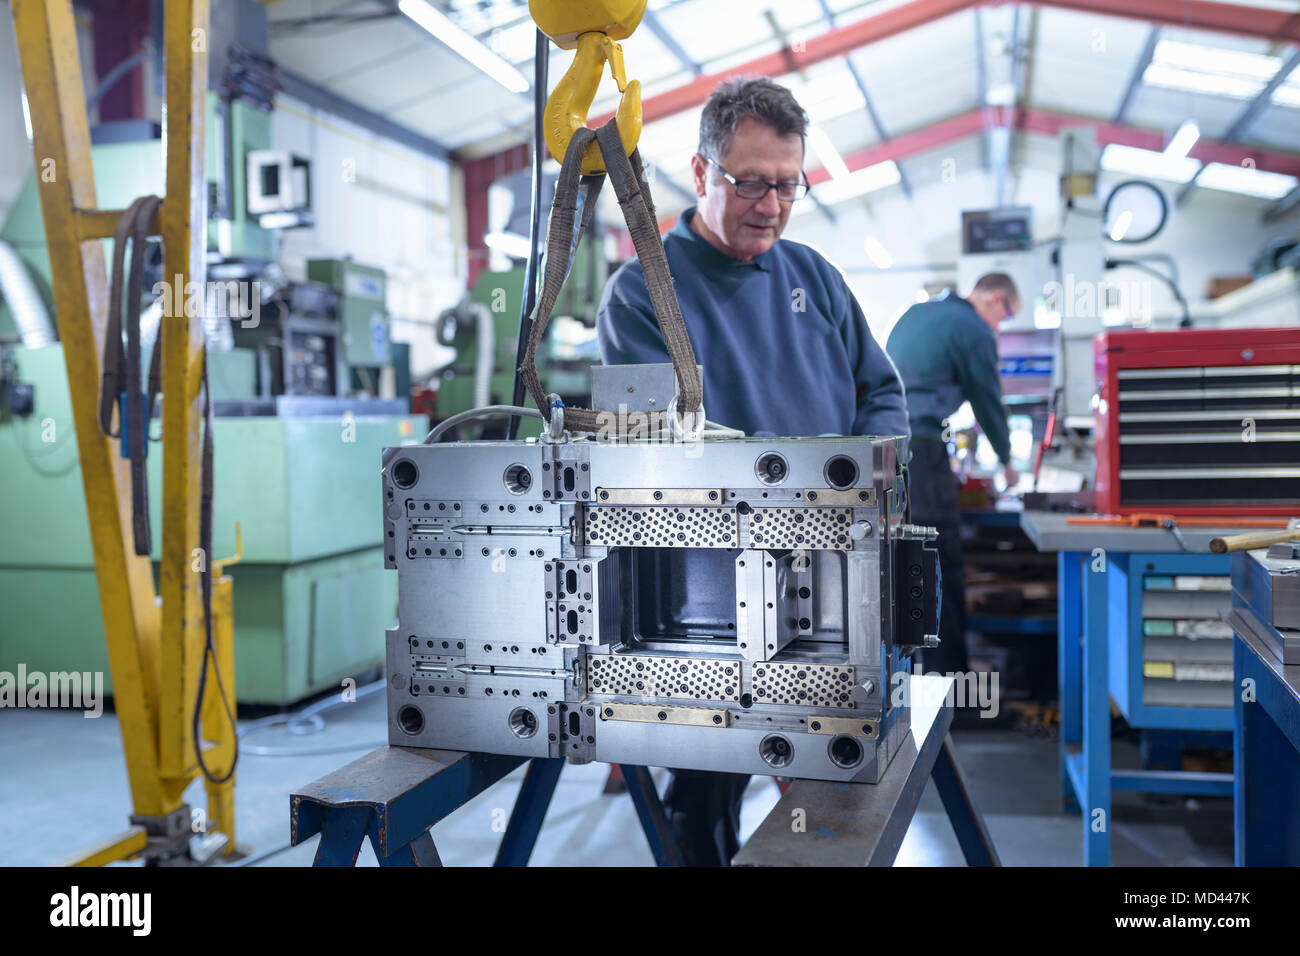 Engineer working on mould for plastic injection in precision engineering factory - Stock Image